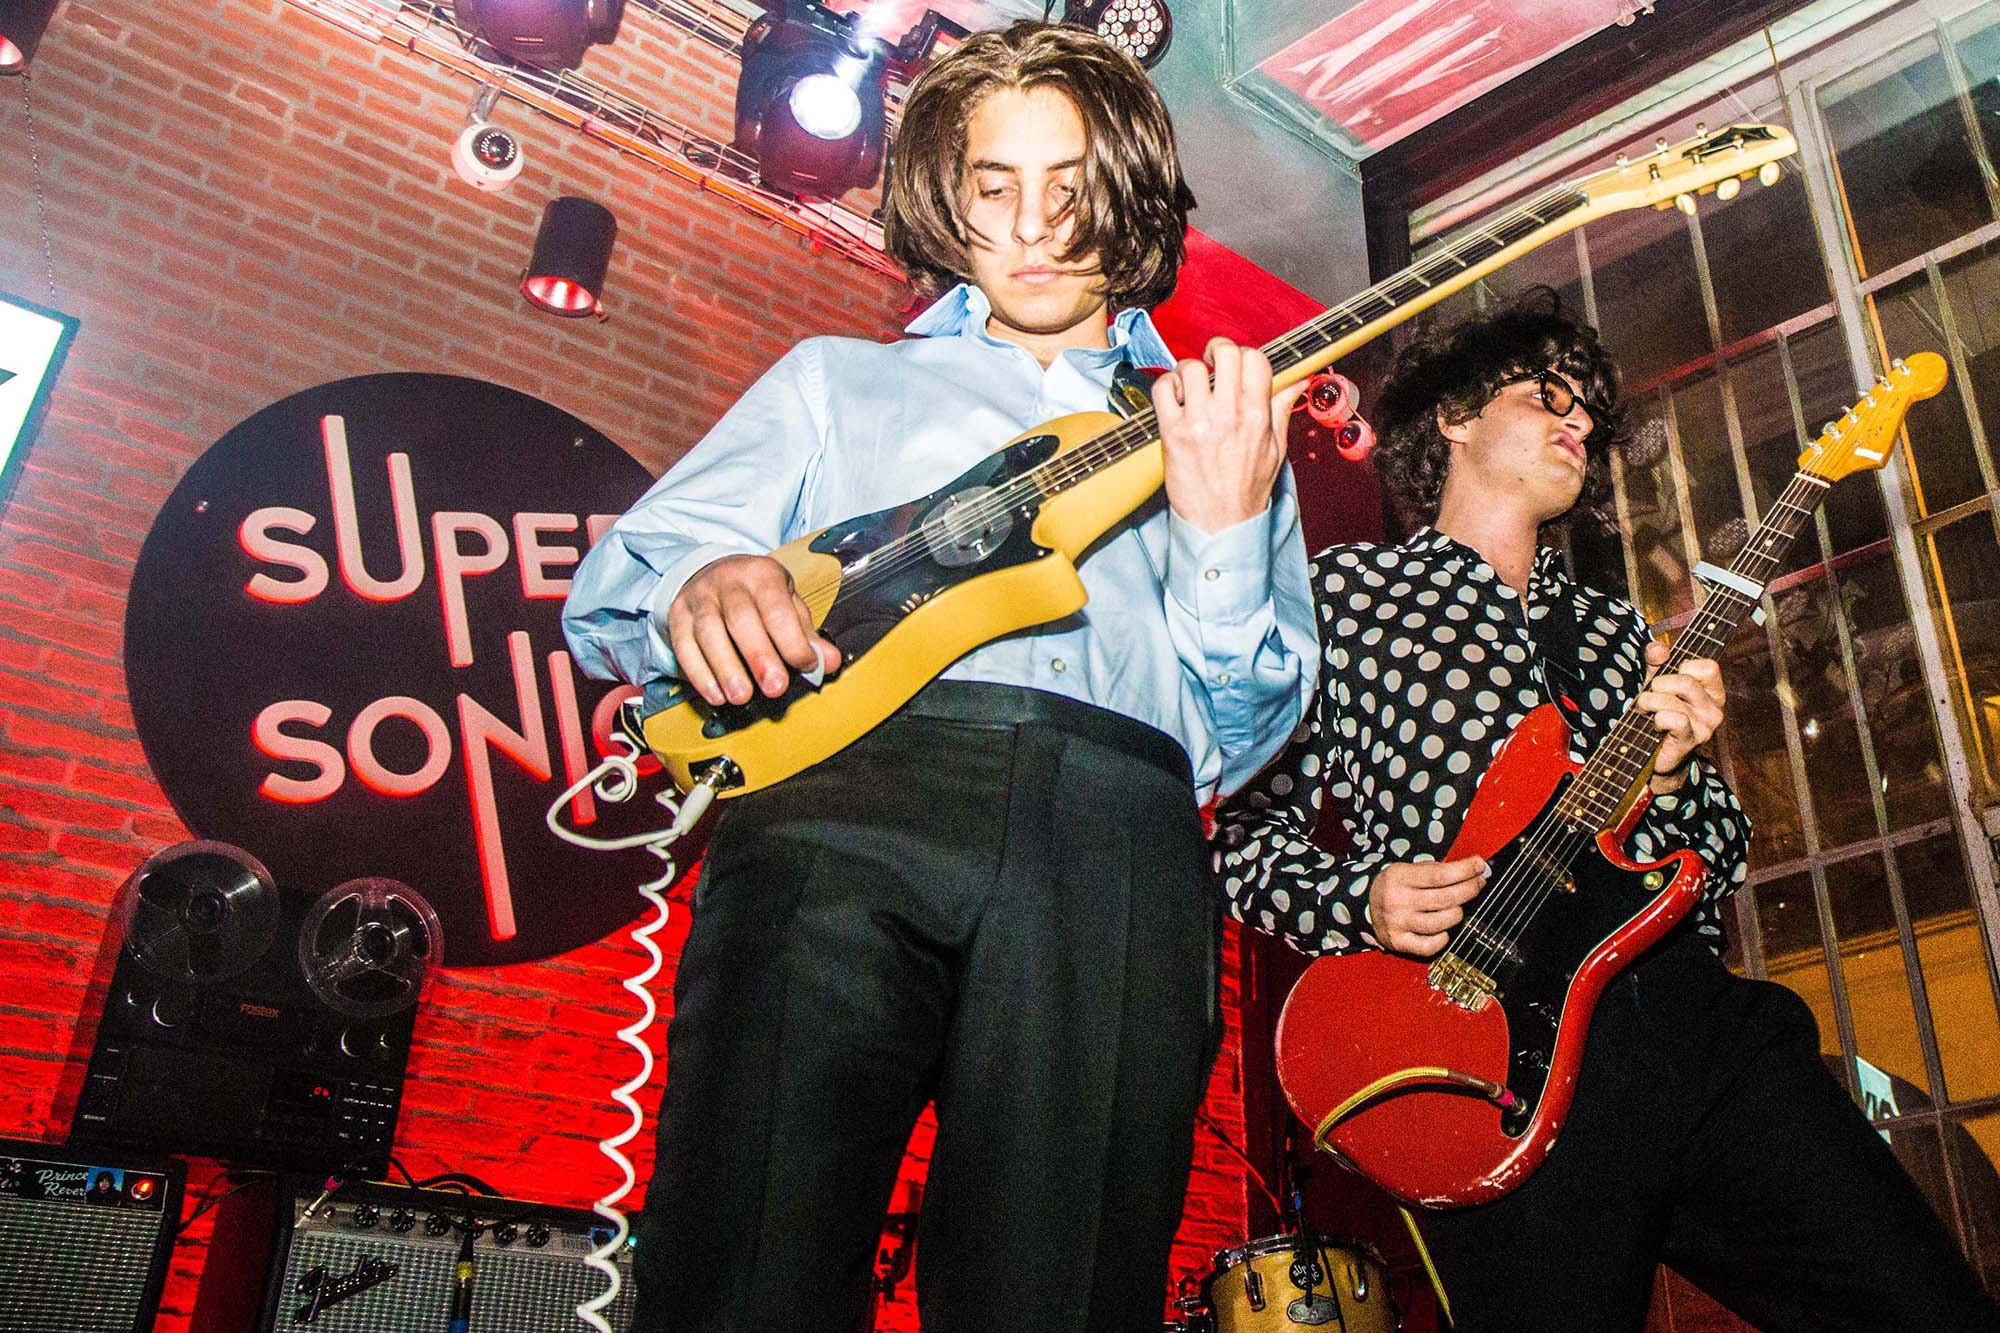 Sons Of Raphael bring unrelenting energy to back-to-back shows in London and Paris